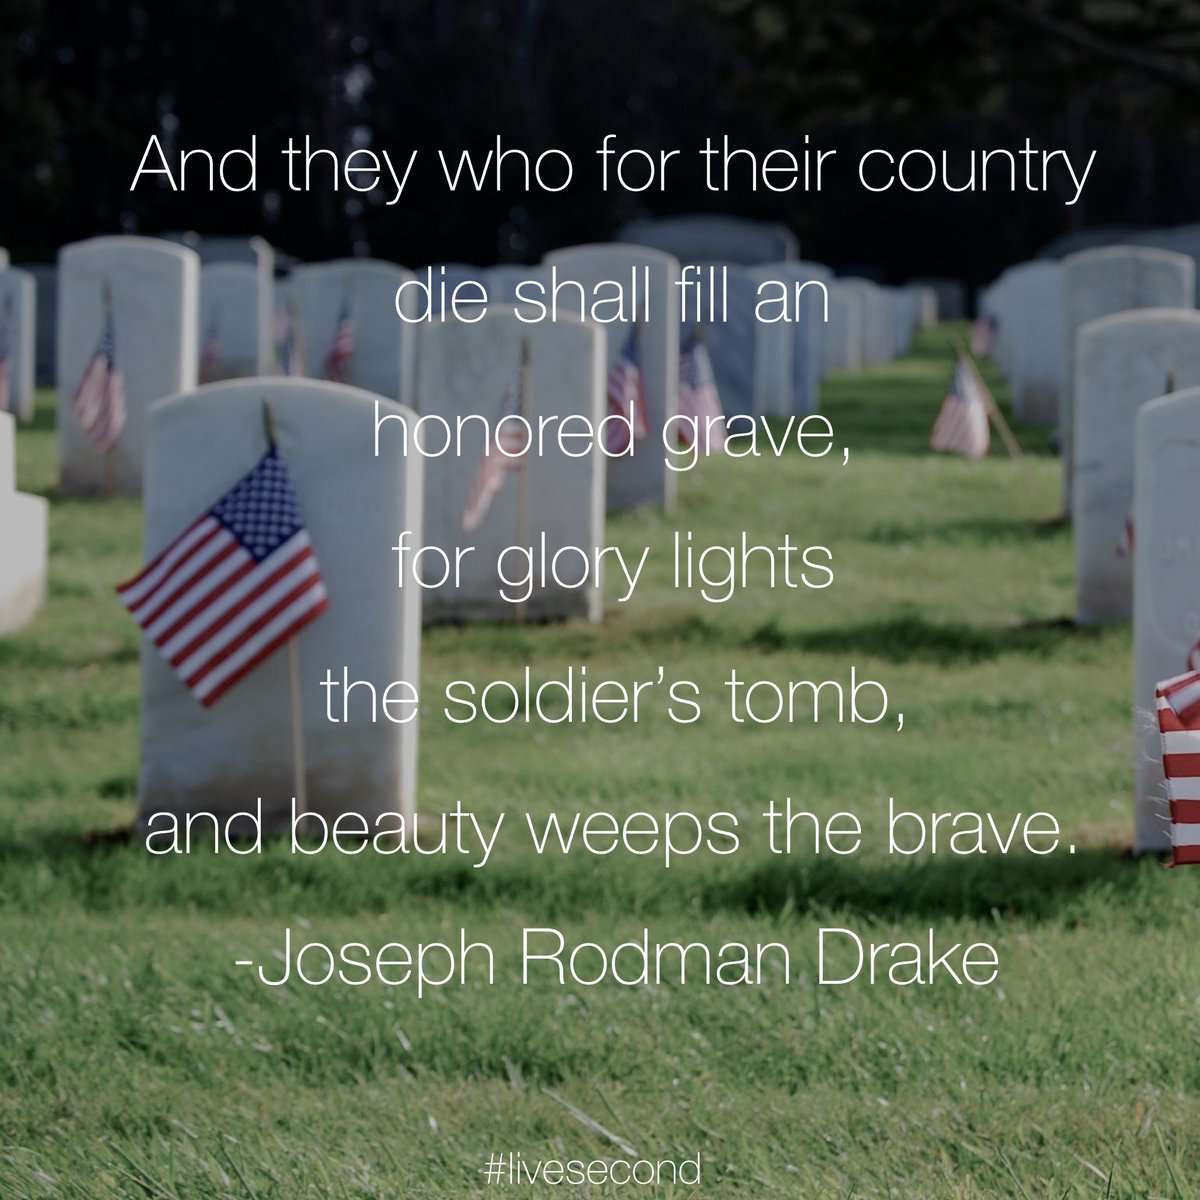 We are eternally thankful for the soldiers who have made the ultimate sacrifice for our country #memorialday https://t.co/R0TEaA5jdA